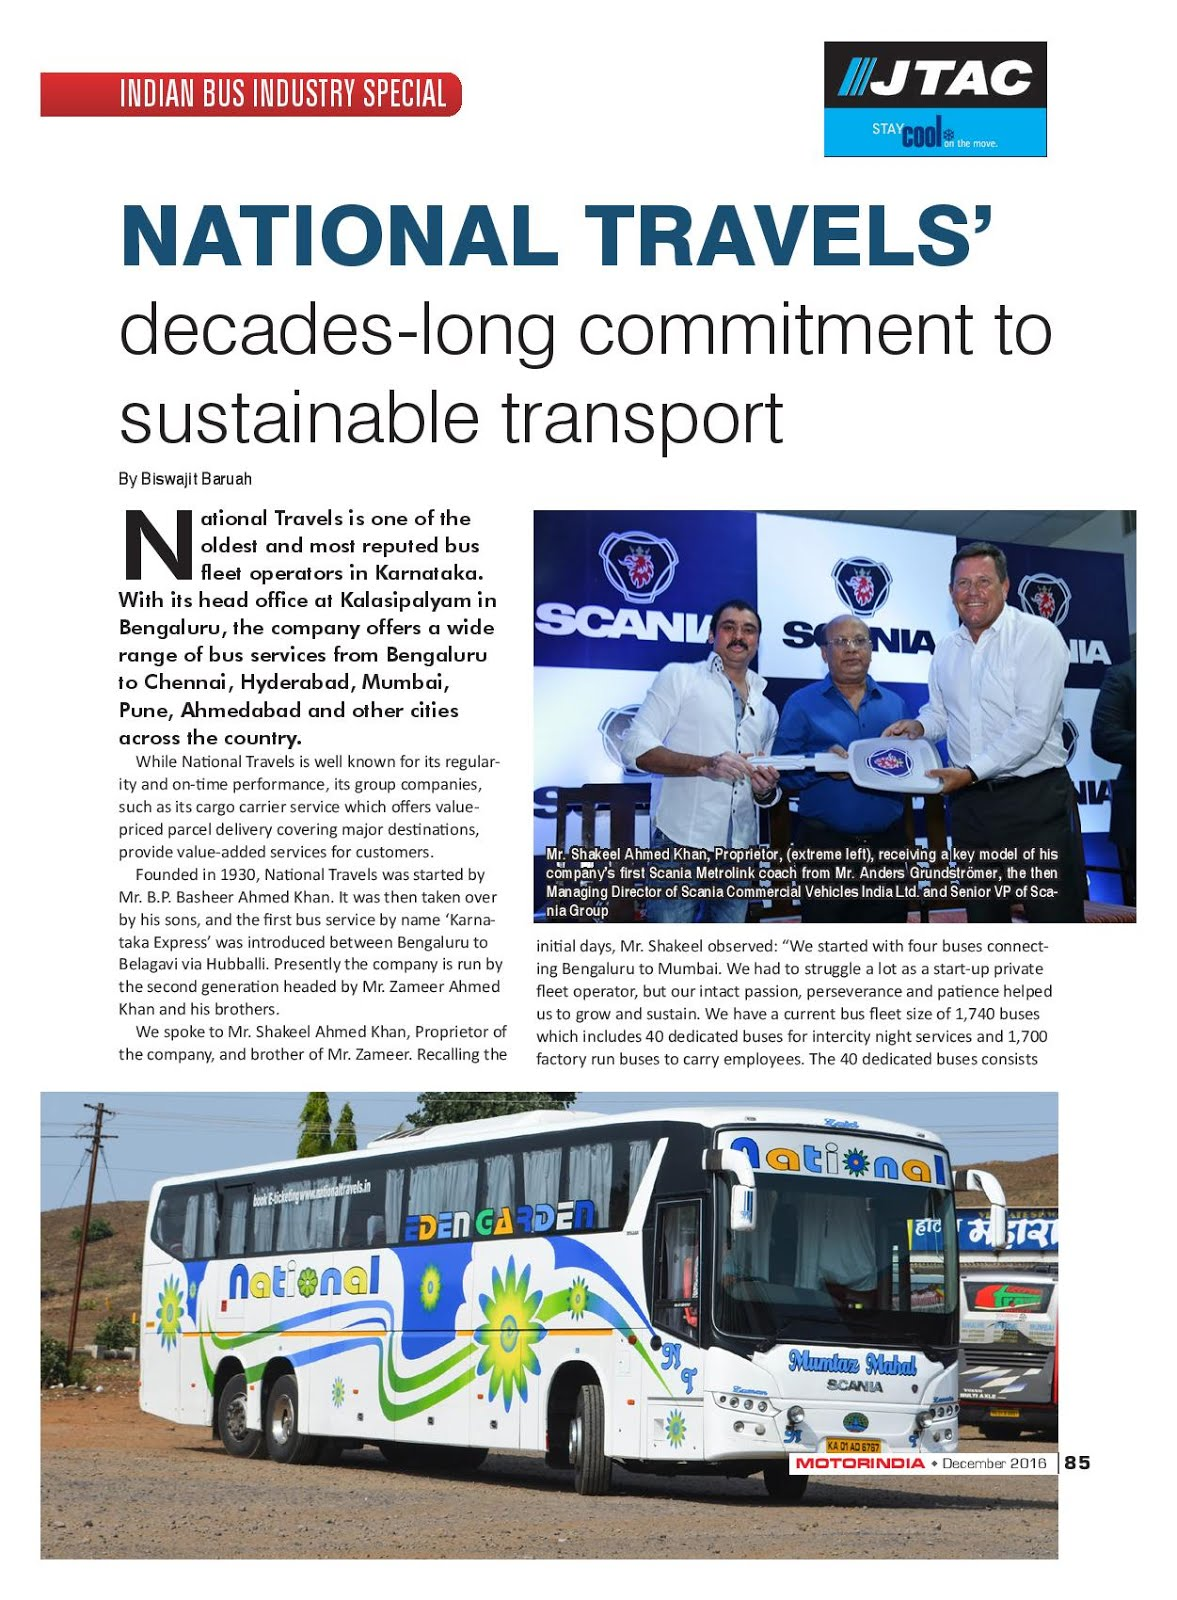 MOTOR INDIA ARTICLE 9 : NATIONAL TRAVELS